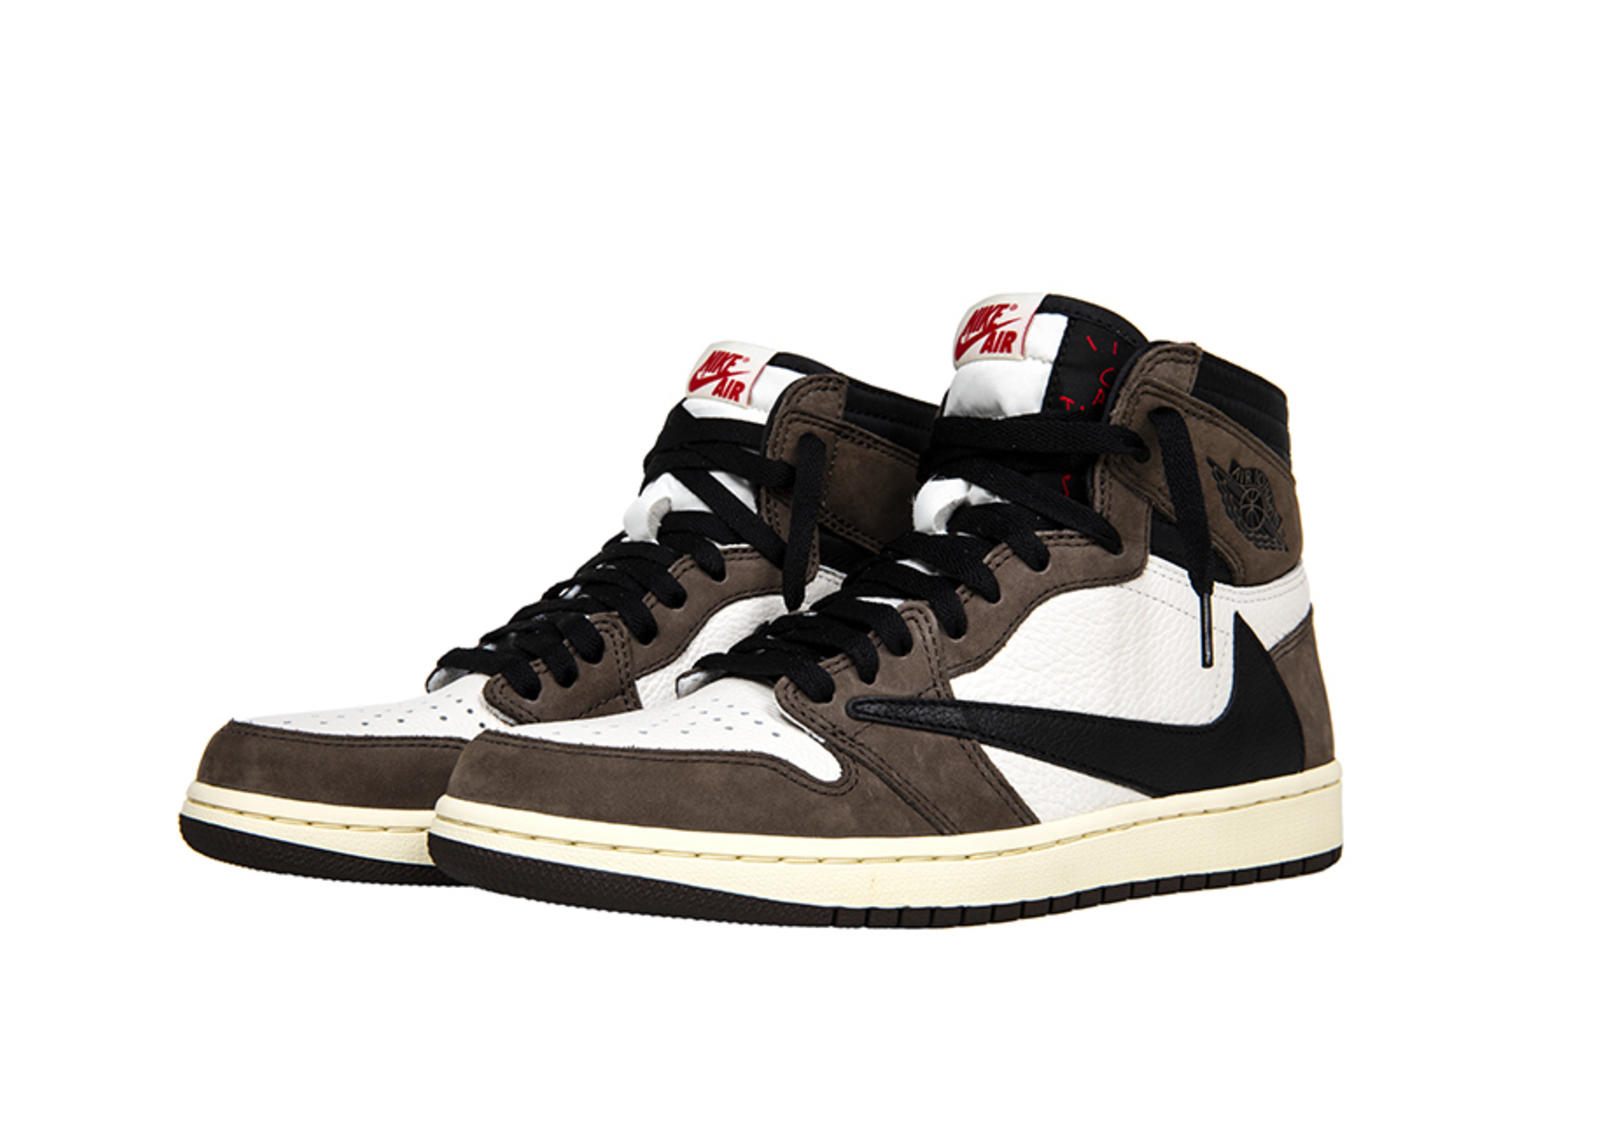 060f4a97dee Travis Scott Air Jordan I High OG and Apparel Collection Official Images and  Release Date 23